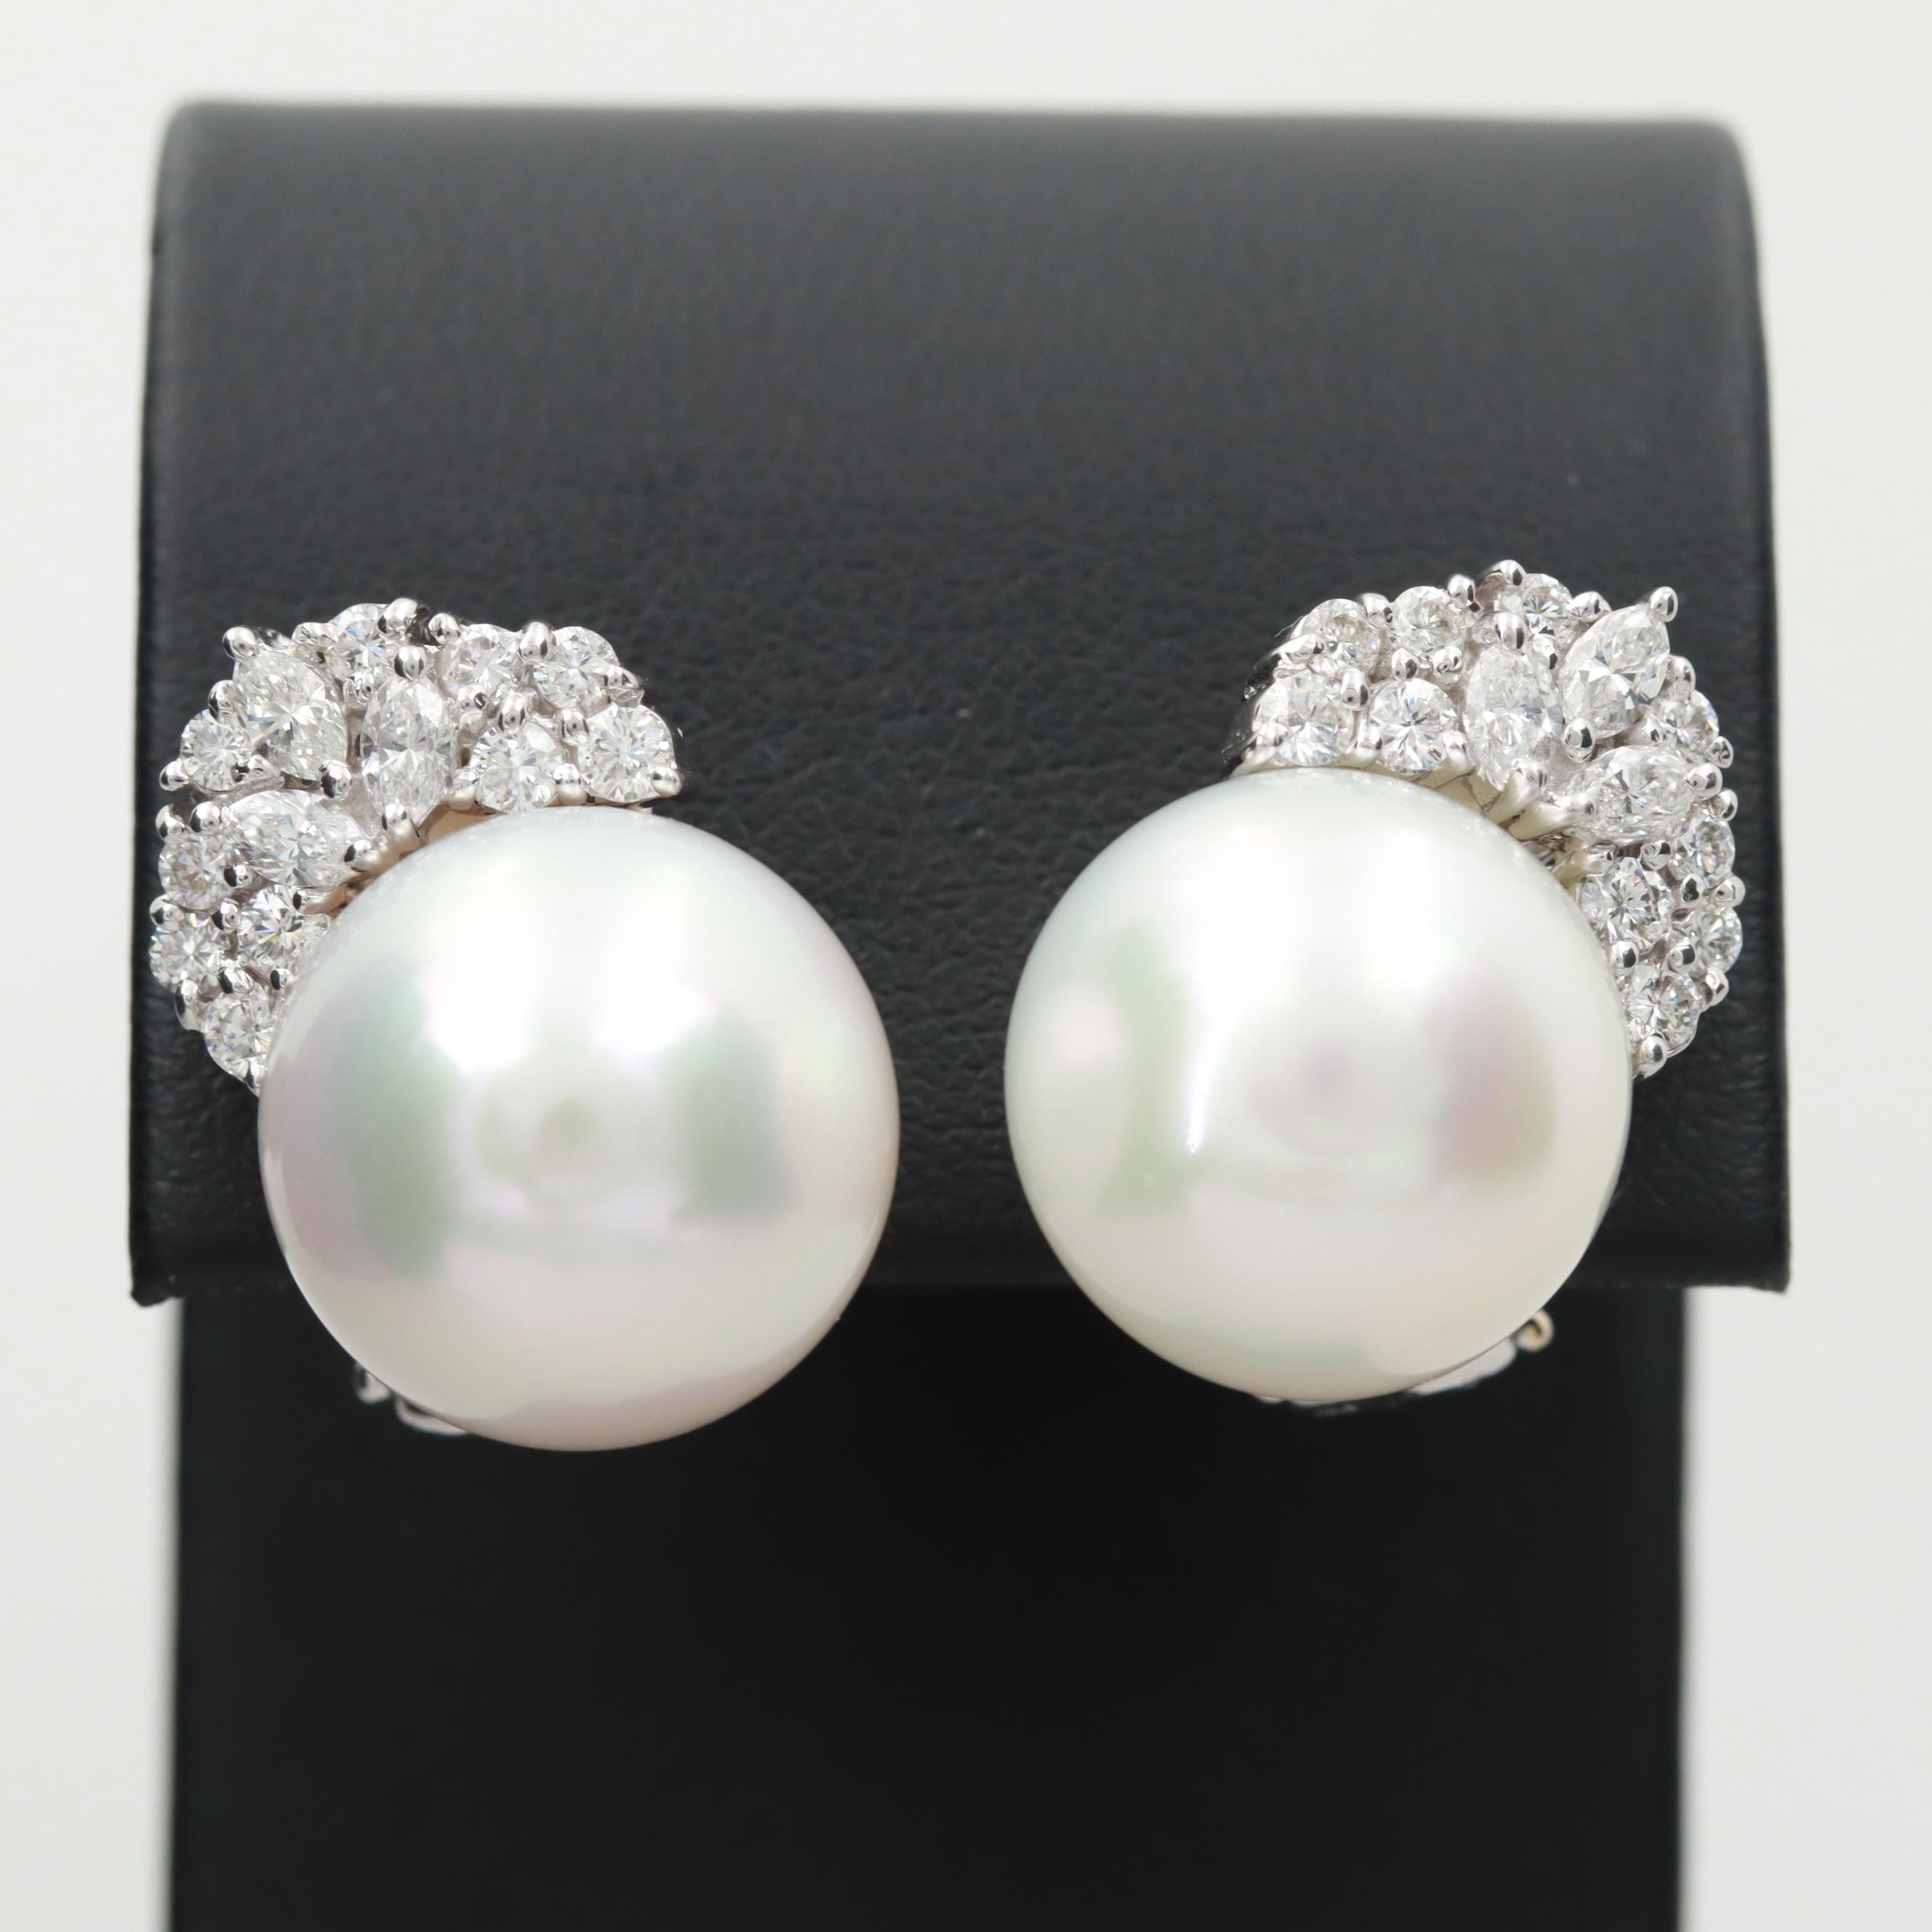 18K White Gold Cultured Pearl and 1.06 CTW Diamond Earrings